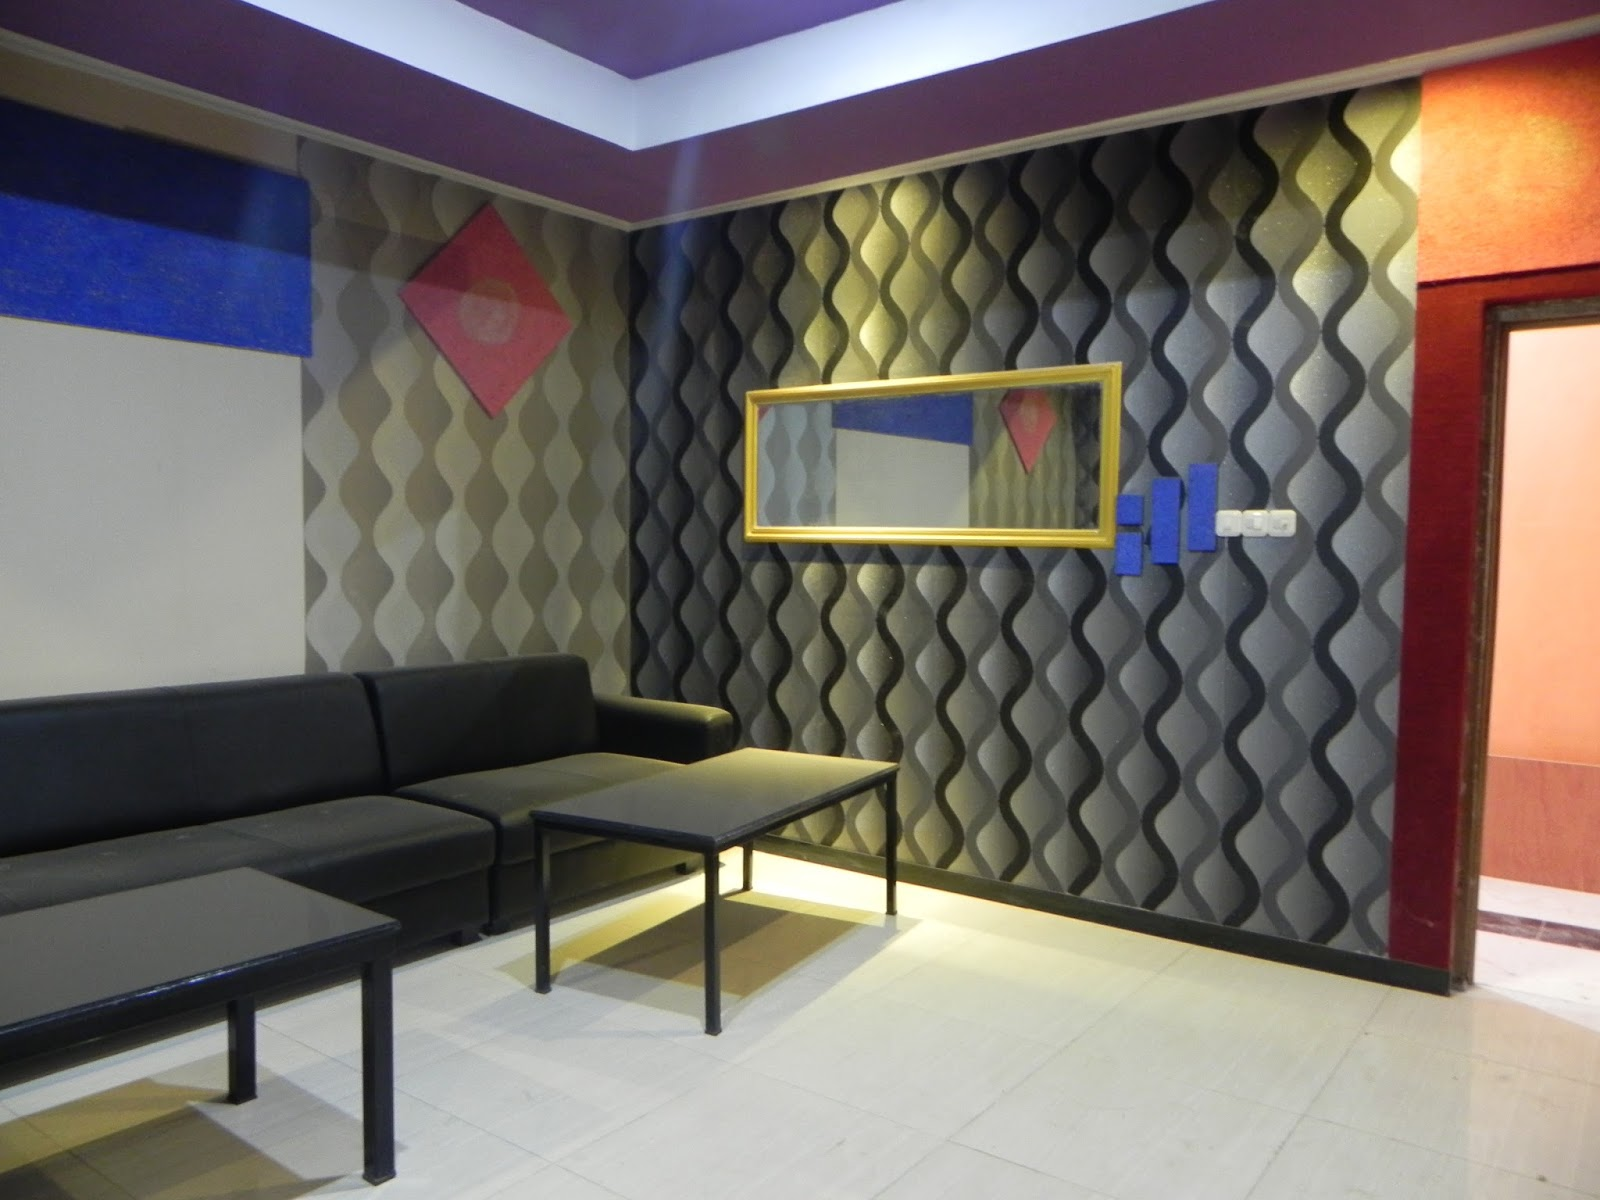 Maha karya karaoke system interior design room karaoke for Karaoke room design ideas